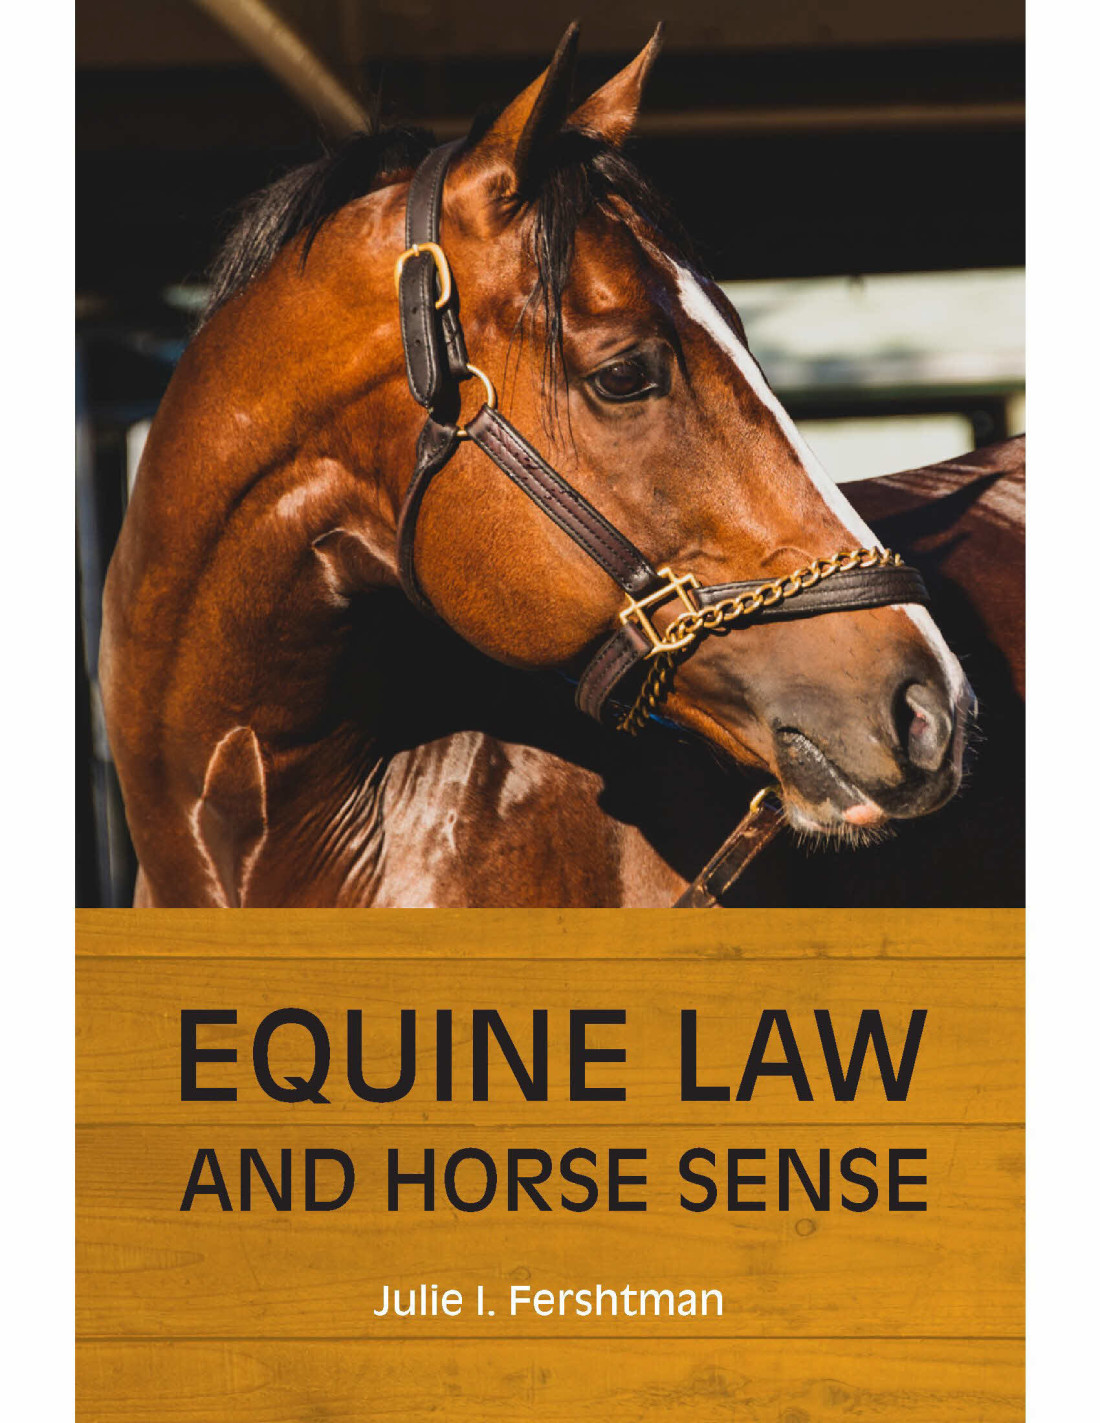 Equine Law and Horse Sense Book Cover